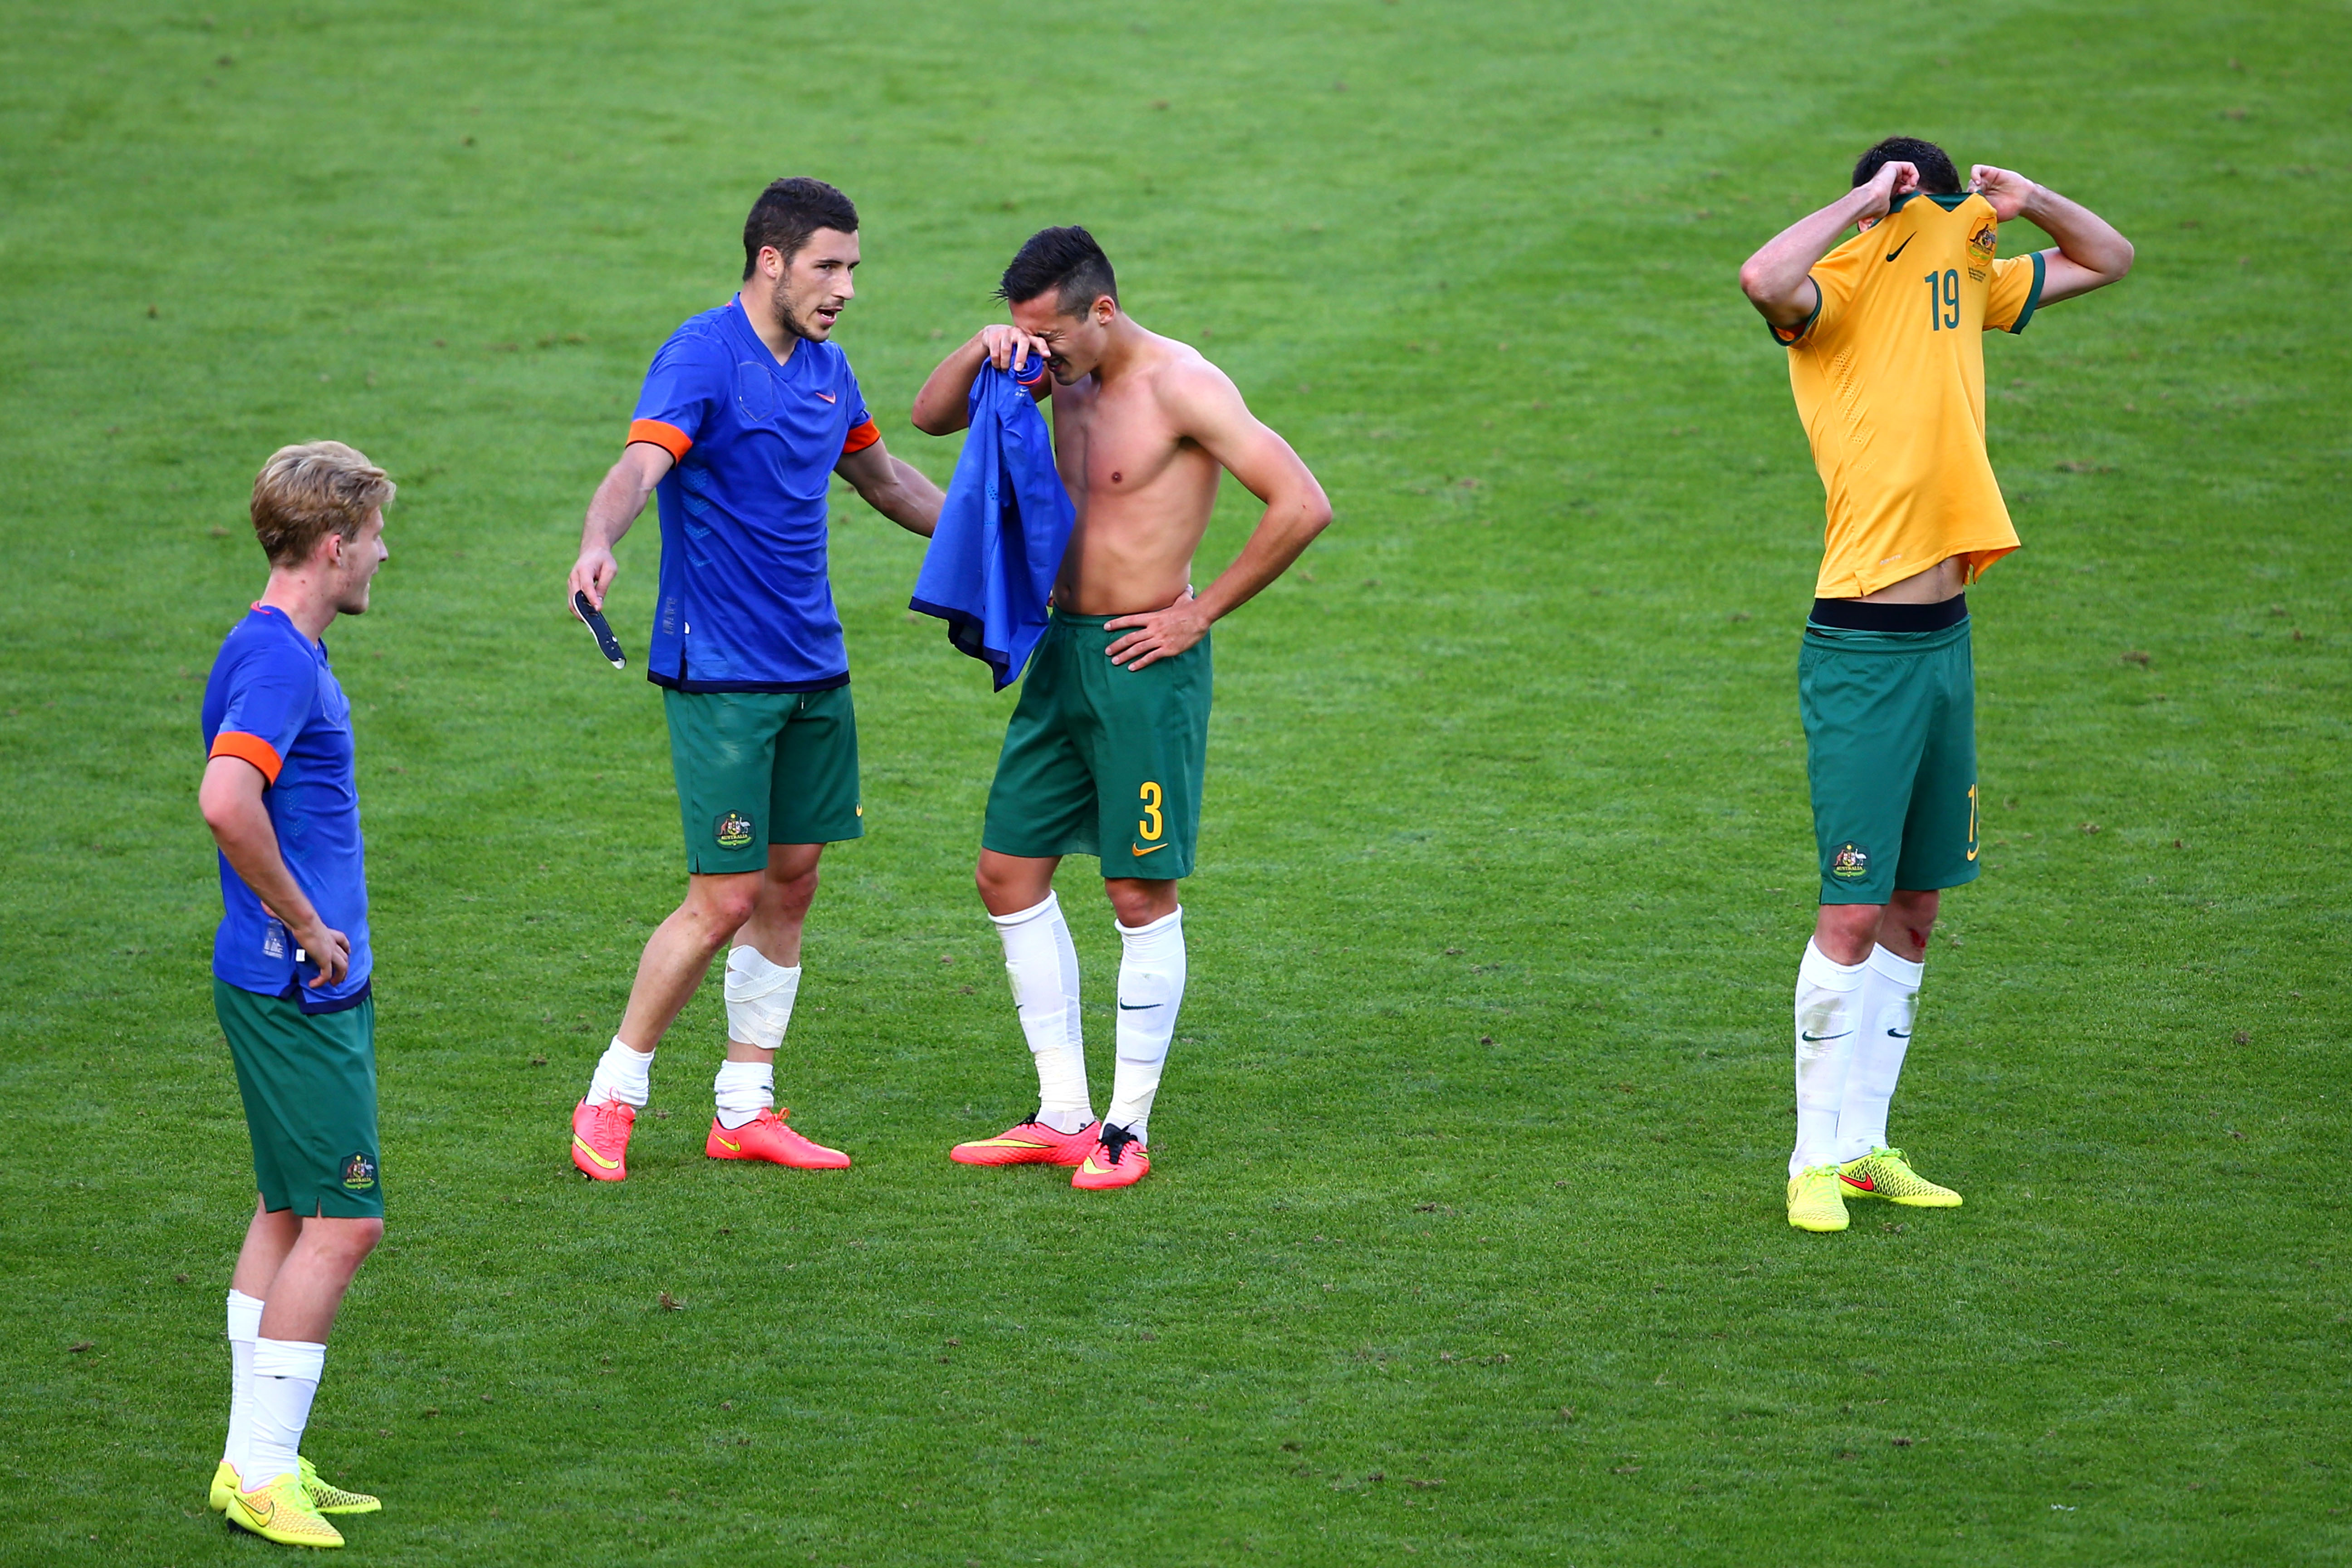 Australia players, World Cup 2014